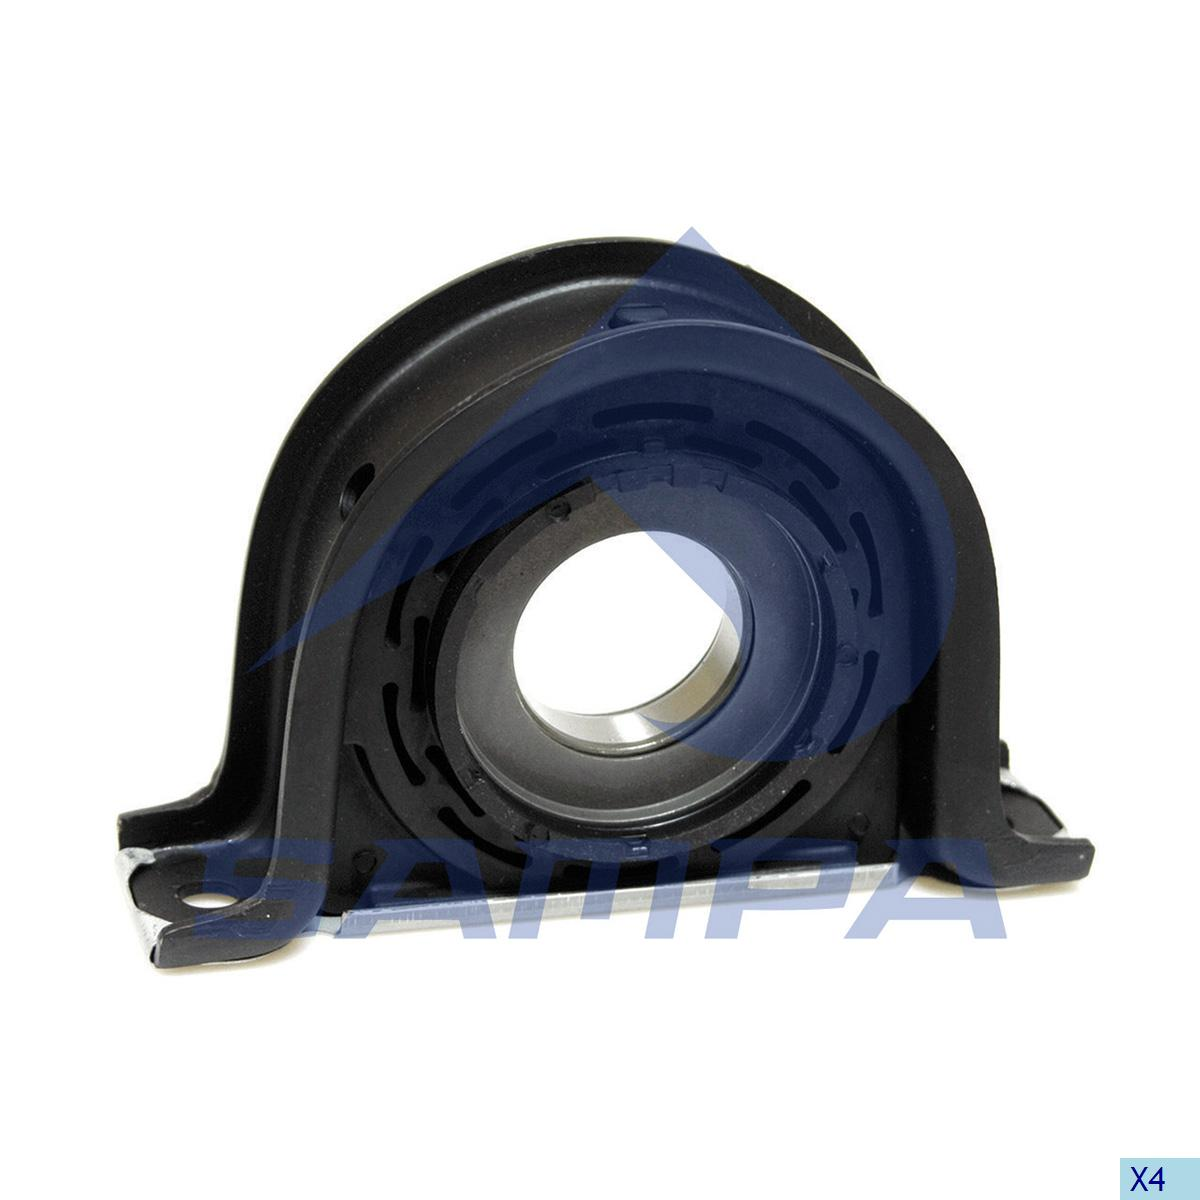 Propeller Shaft Bearing, Daf, Propeller Shaft